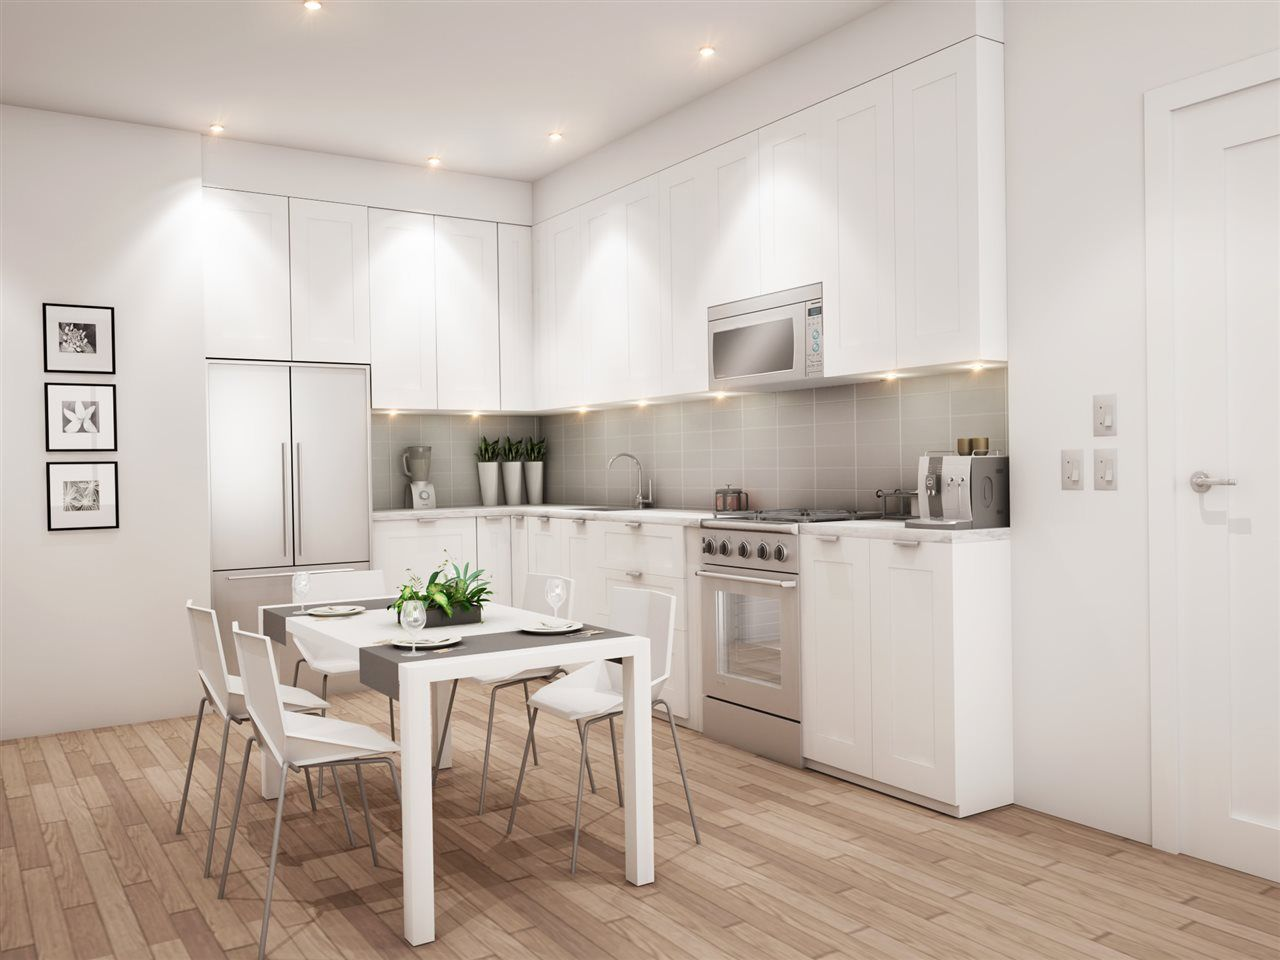 Kitchen design concept for Vancouver's Brookhouse Residences.